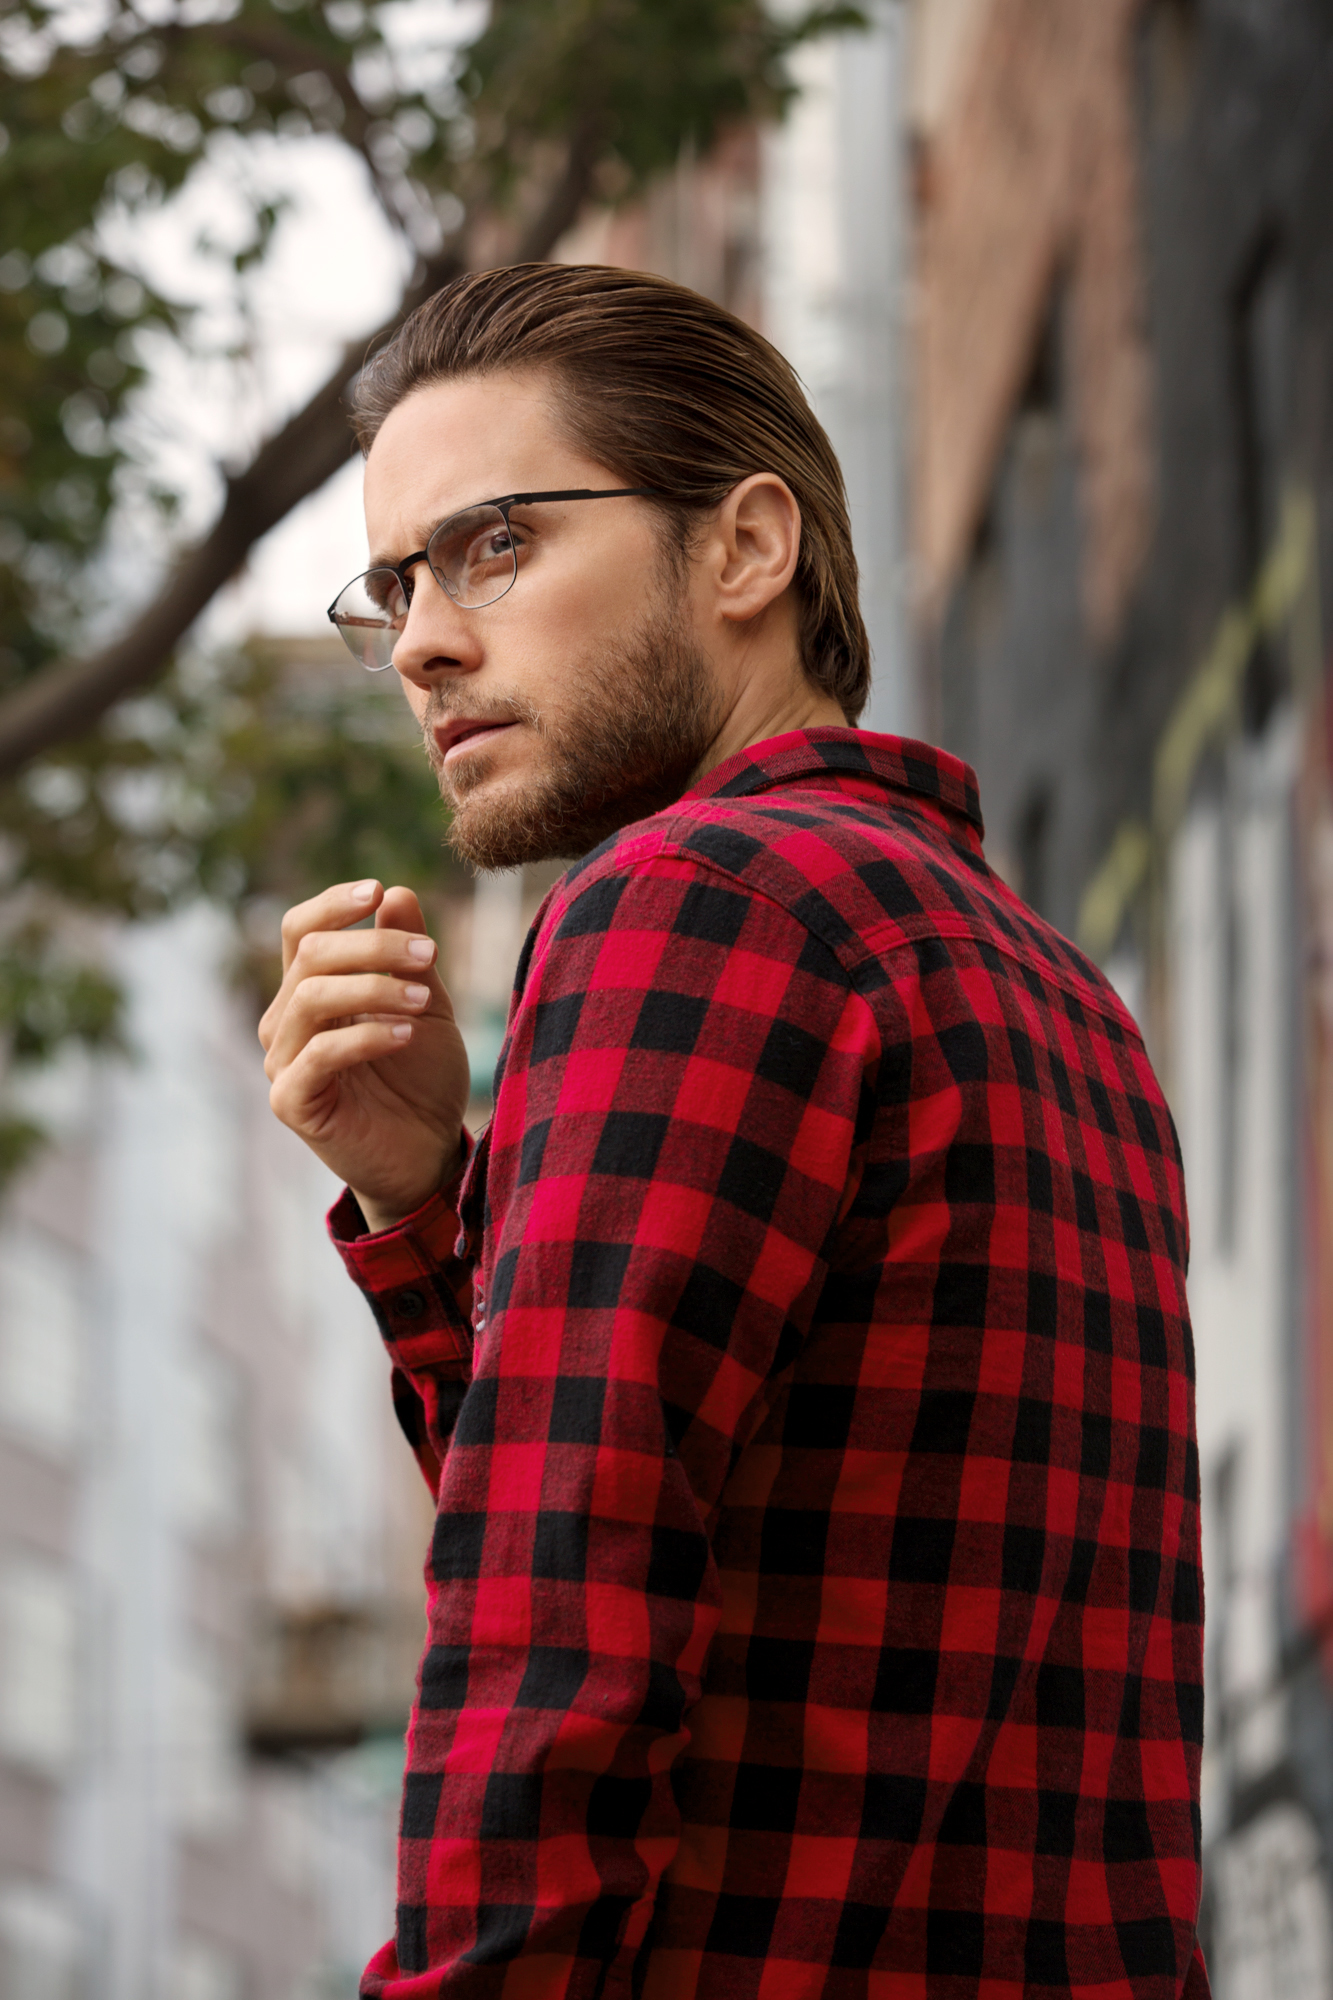 Carrera Unveils New Ad Campaign Featuring Jared Leto